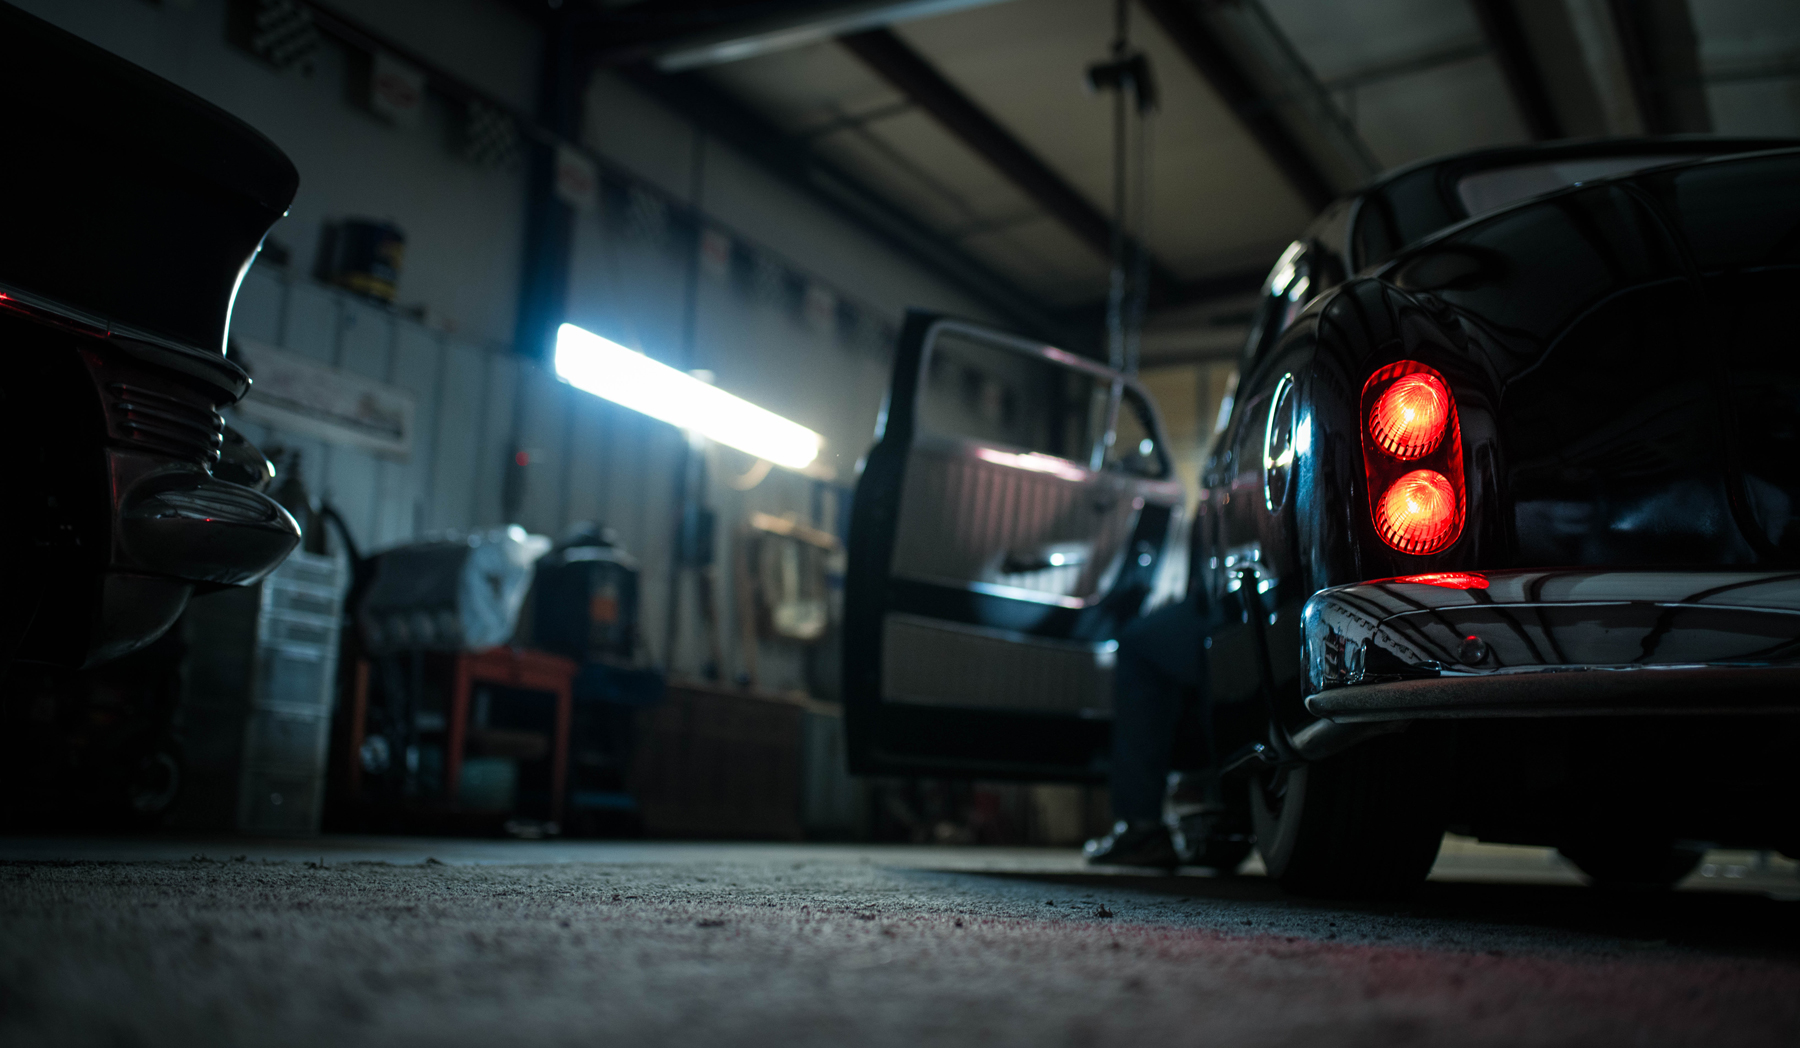 A classic car idling in a dimly lit garage with the owner working on restoring it